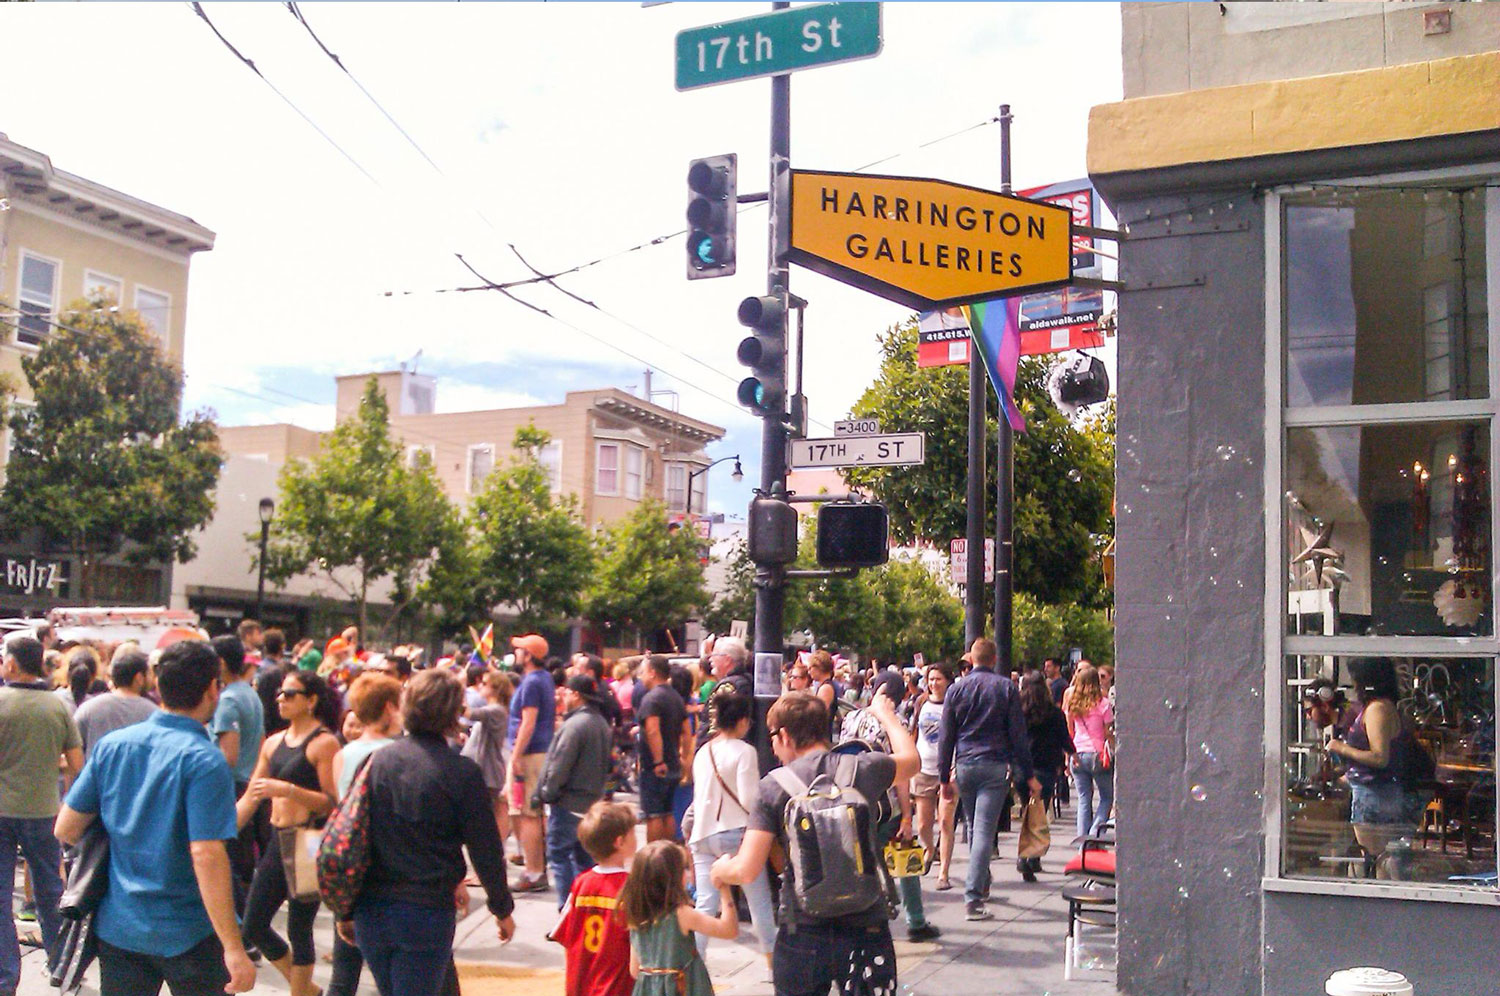 Harrington Galleries - Mission District - Community Events